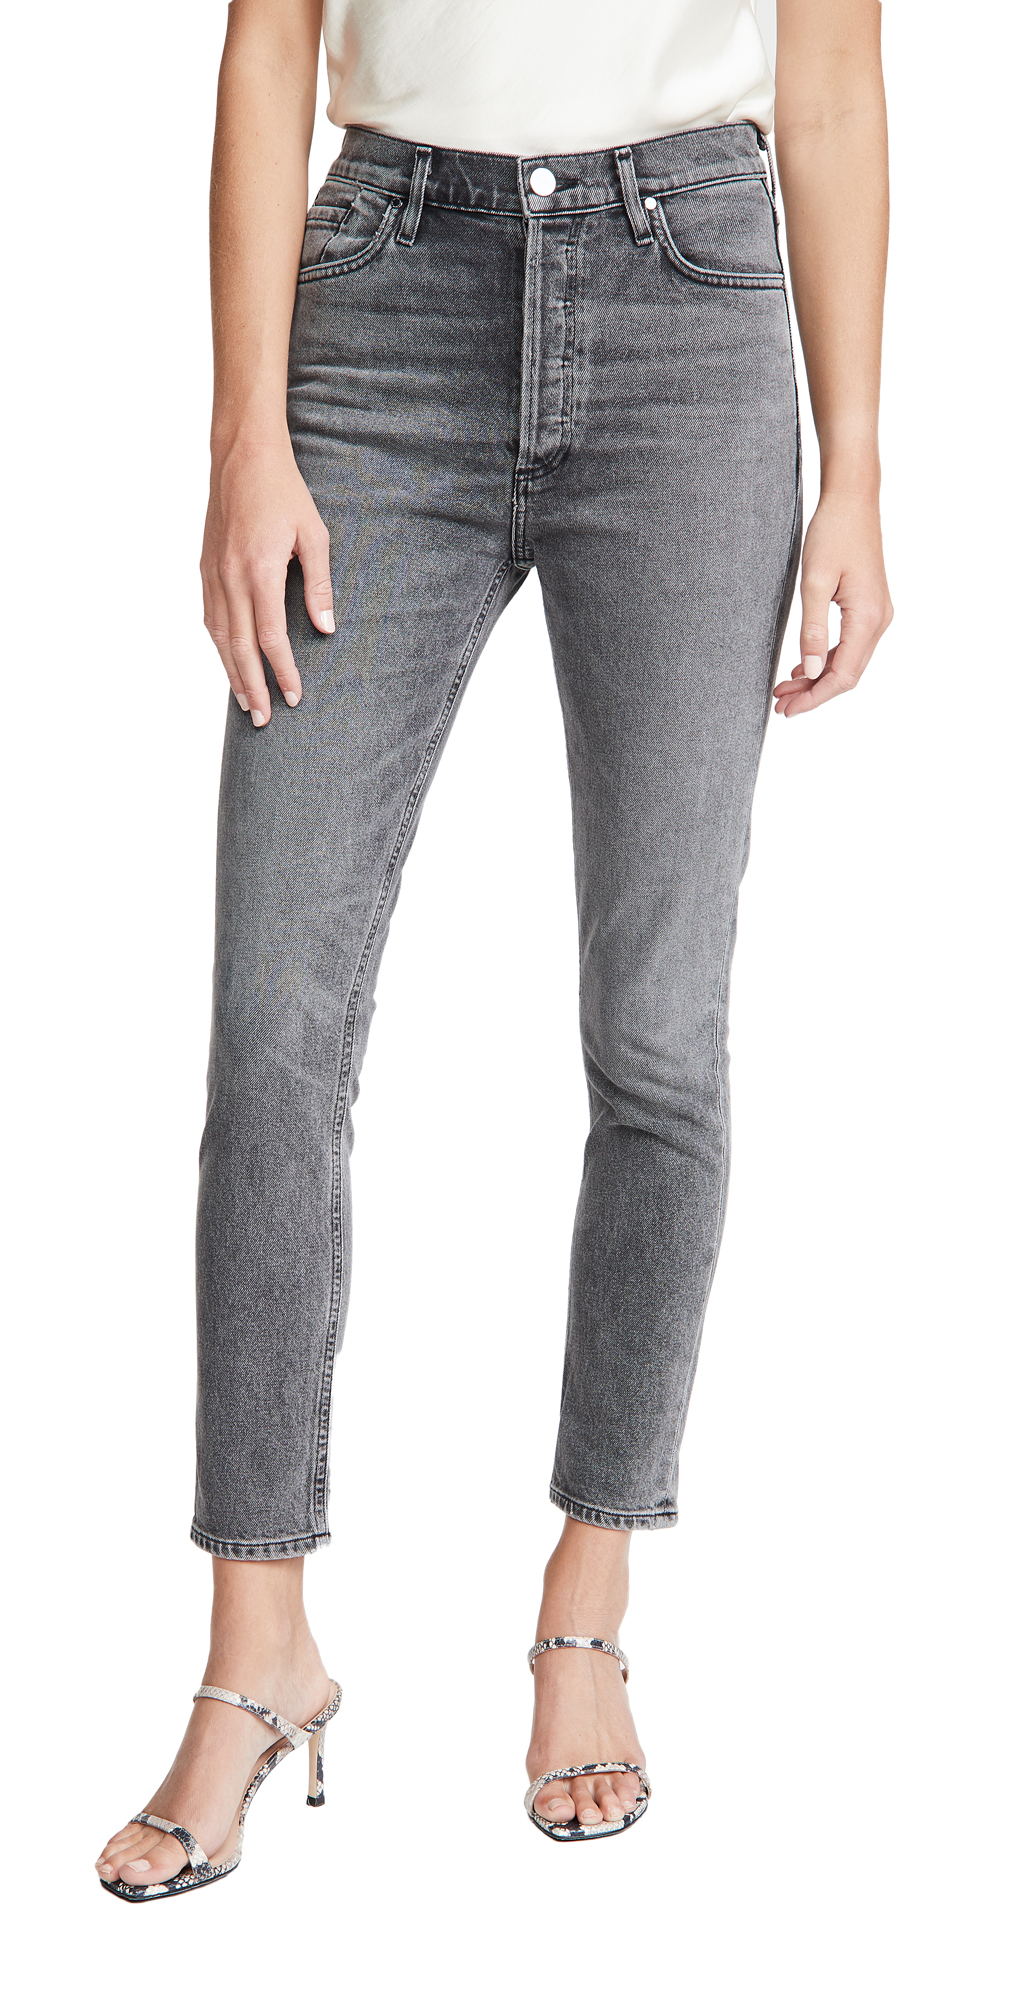 The High Rise Slim Jeans